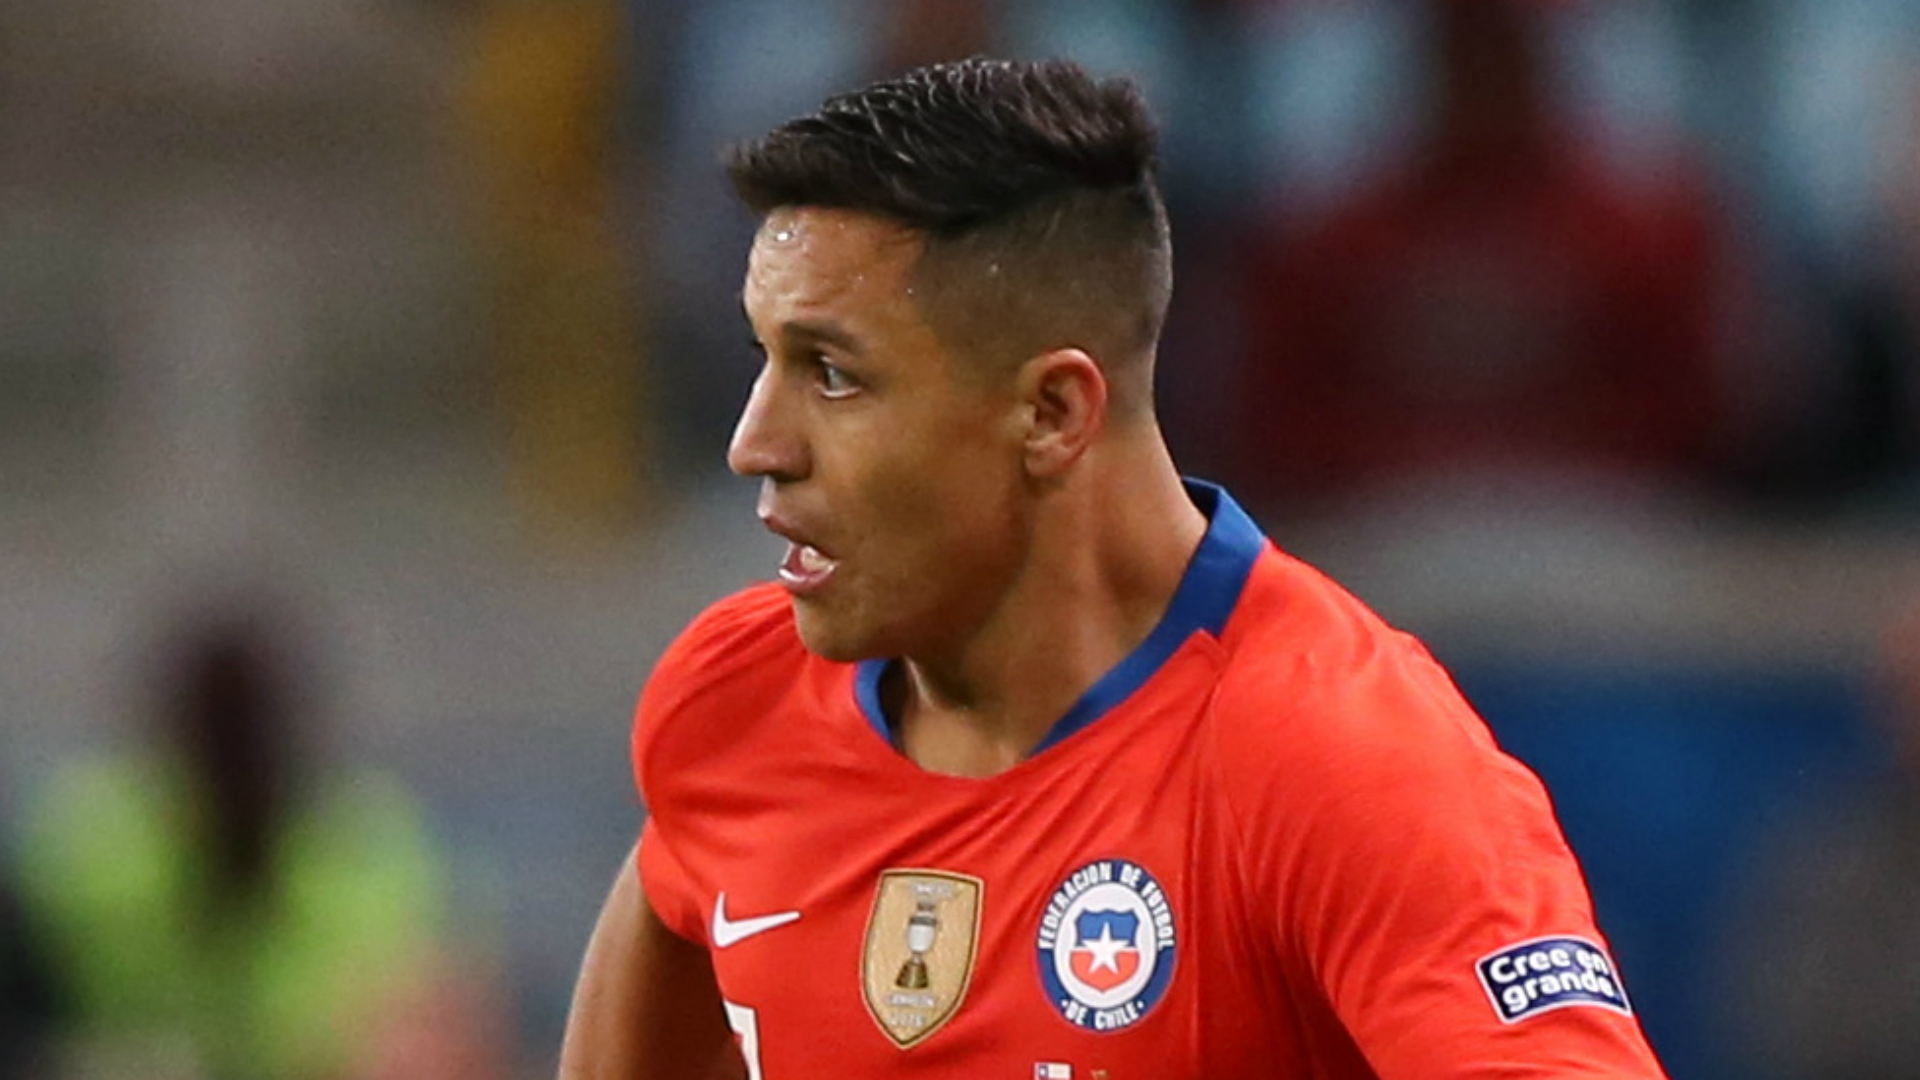 Alexis Sanchez Out 2-3 Months With Ankle Injury